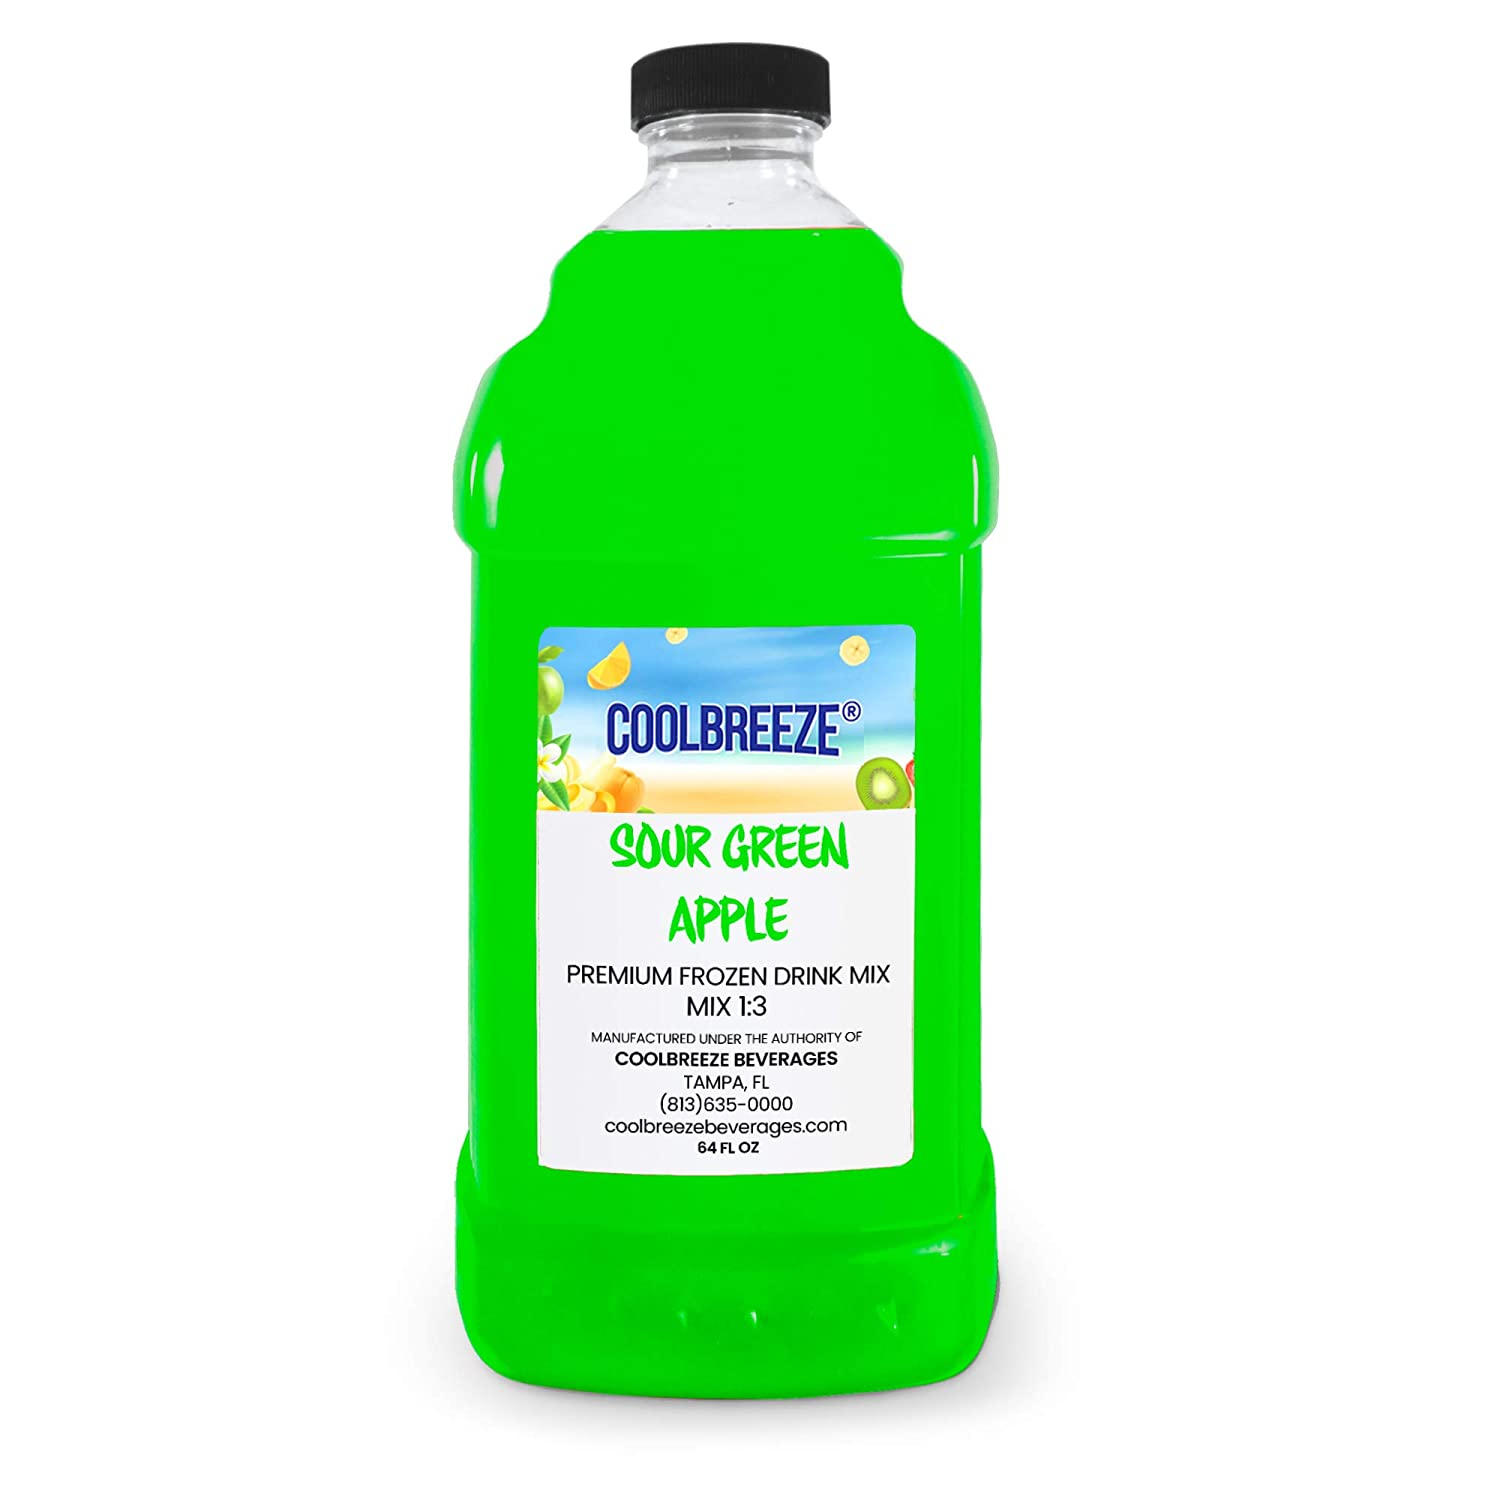 Coolbreeze Beverages Ready to Use Slush Mix Gal Boston Mall 1 S - 2 Bottle Ranking TOP15